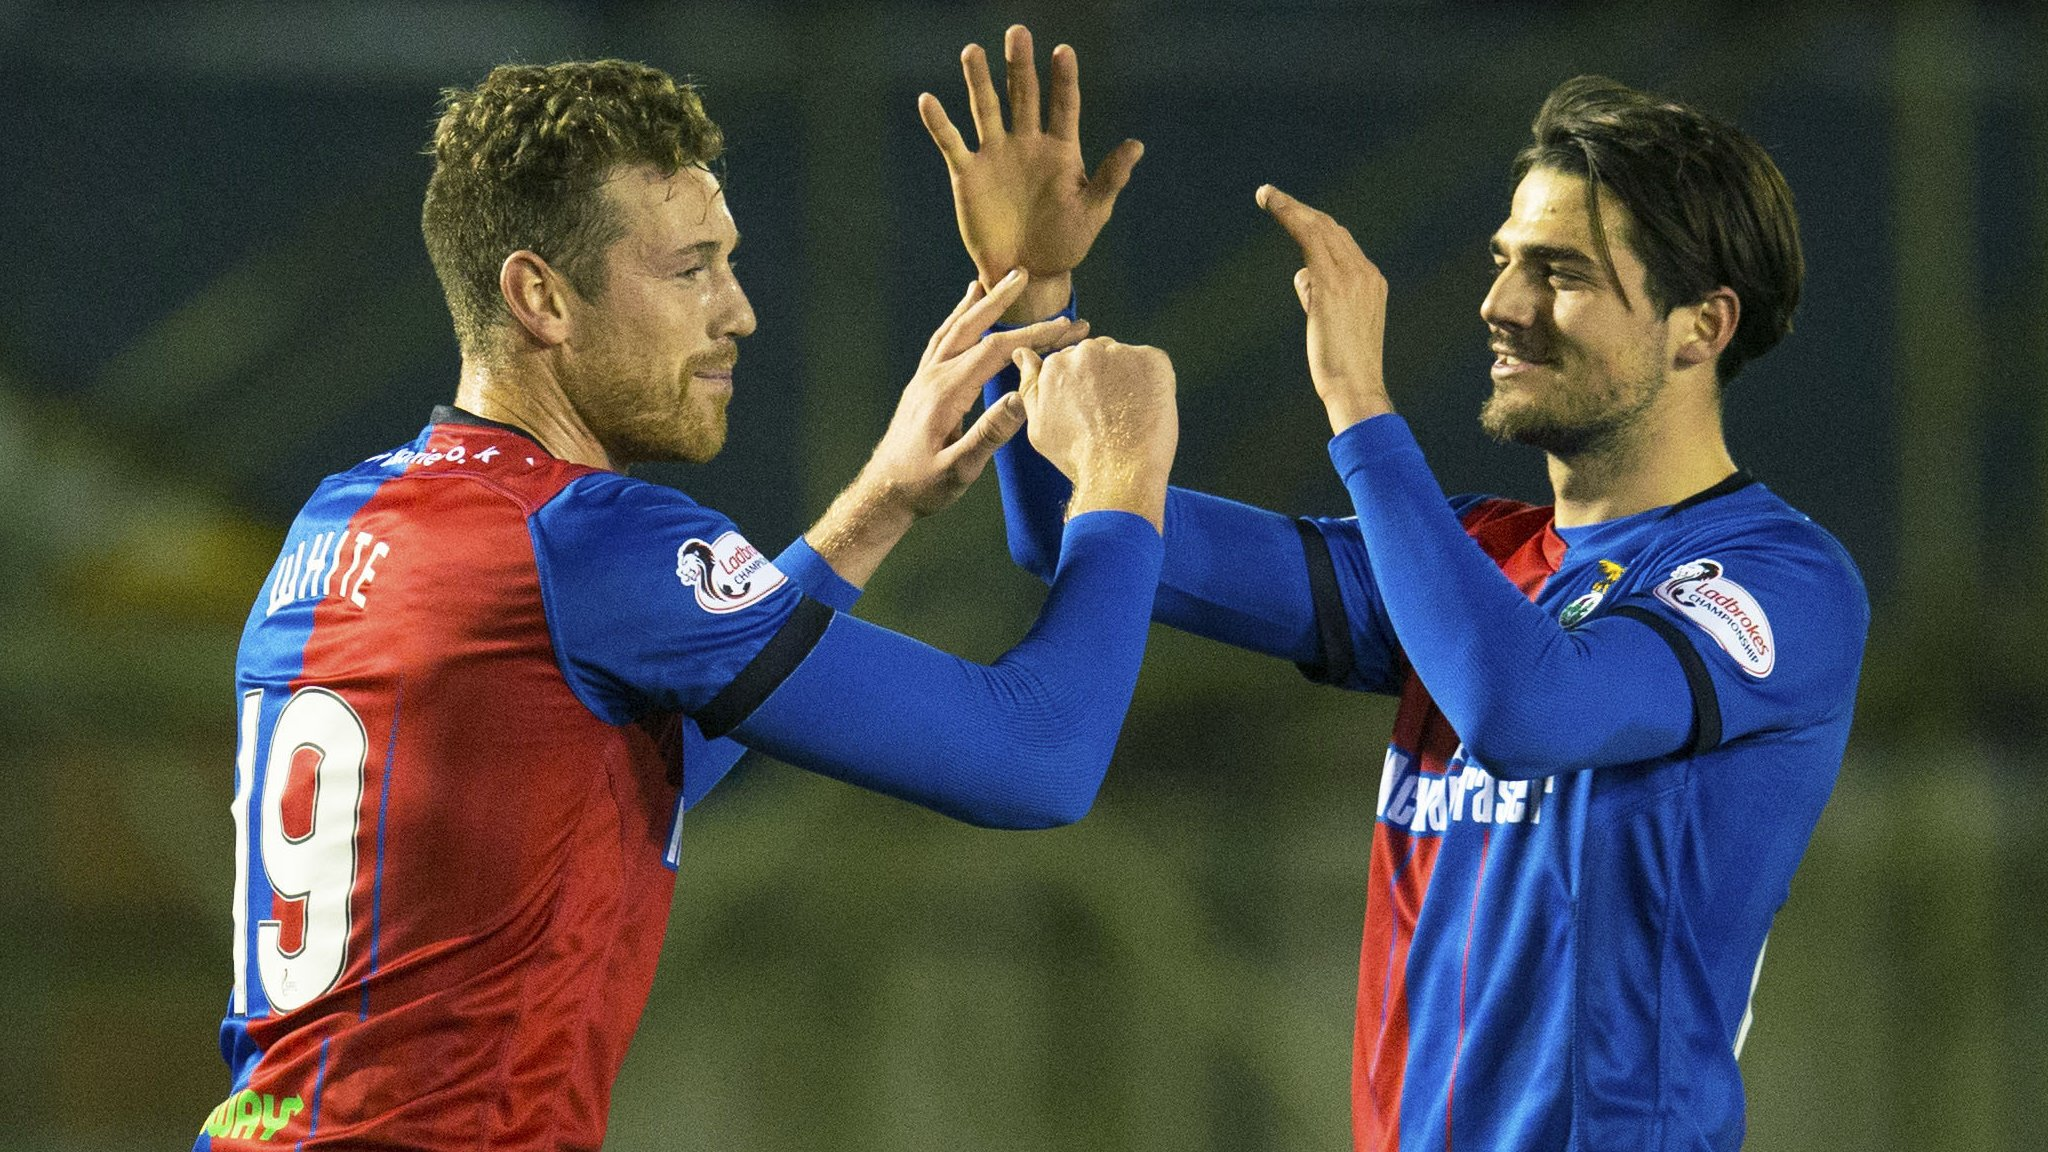 Inverness 6-1 Edinburgh City: White treble helps Highlanders progress in cup